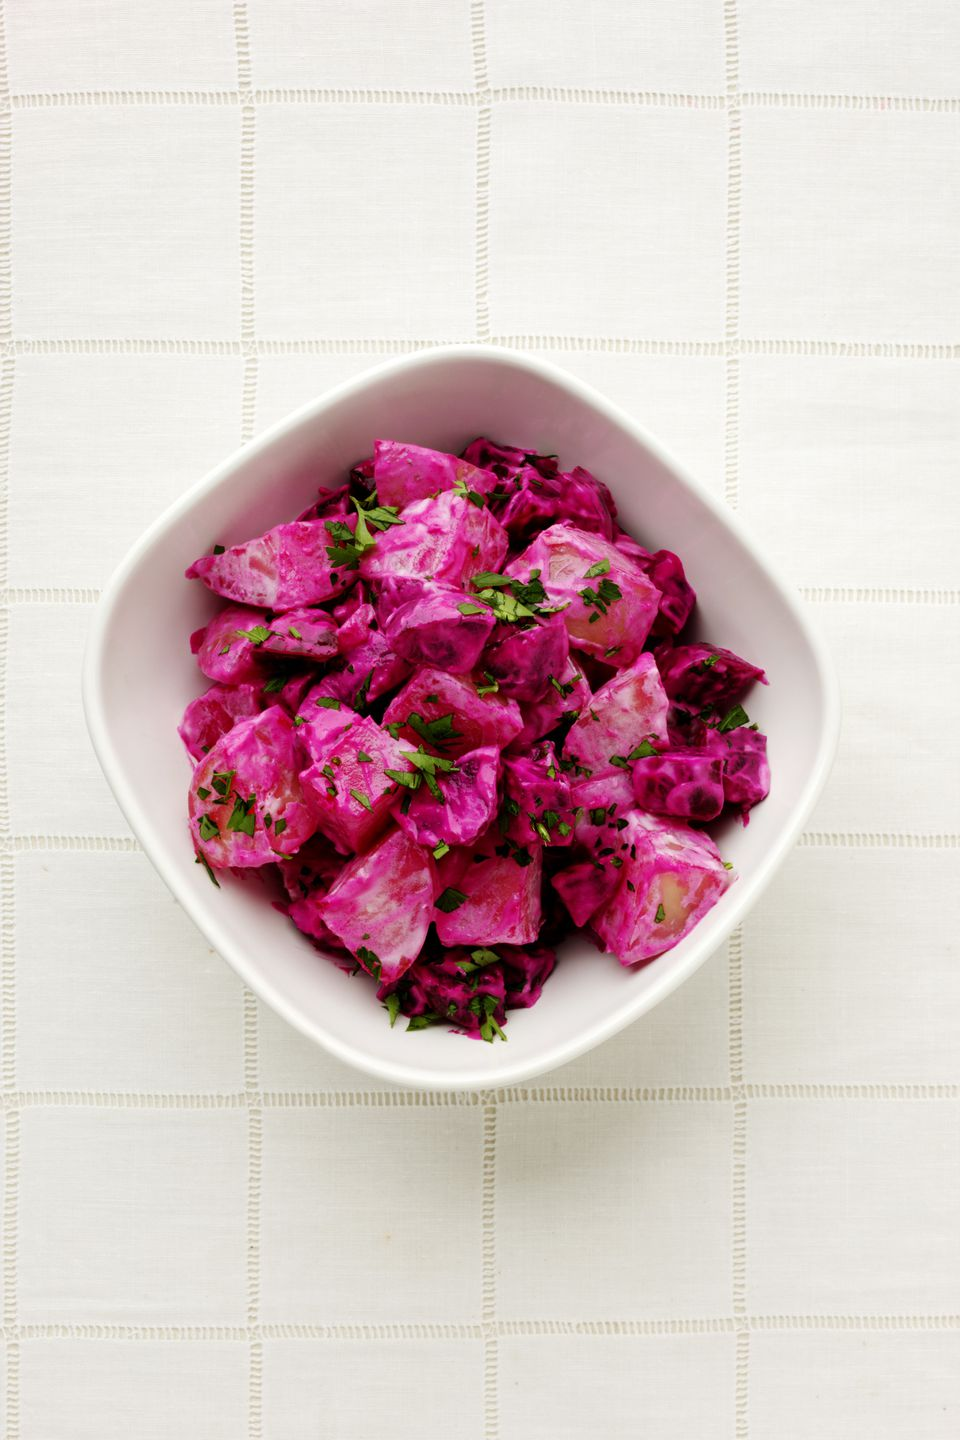 Beetroot and potato salad